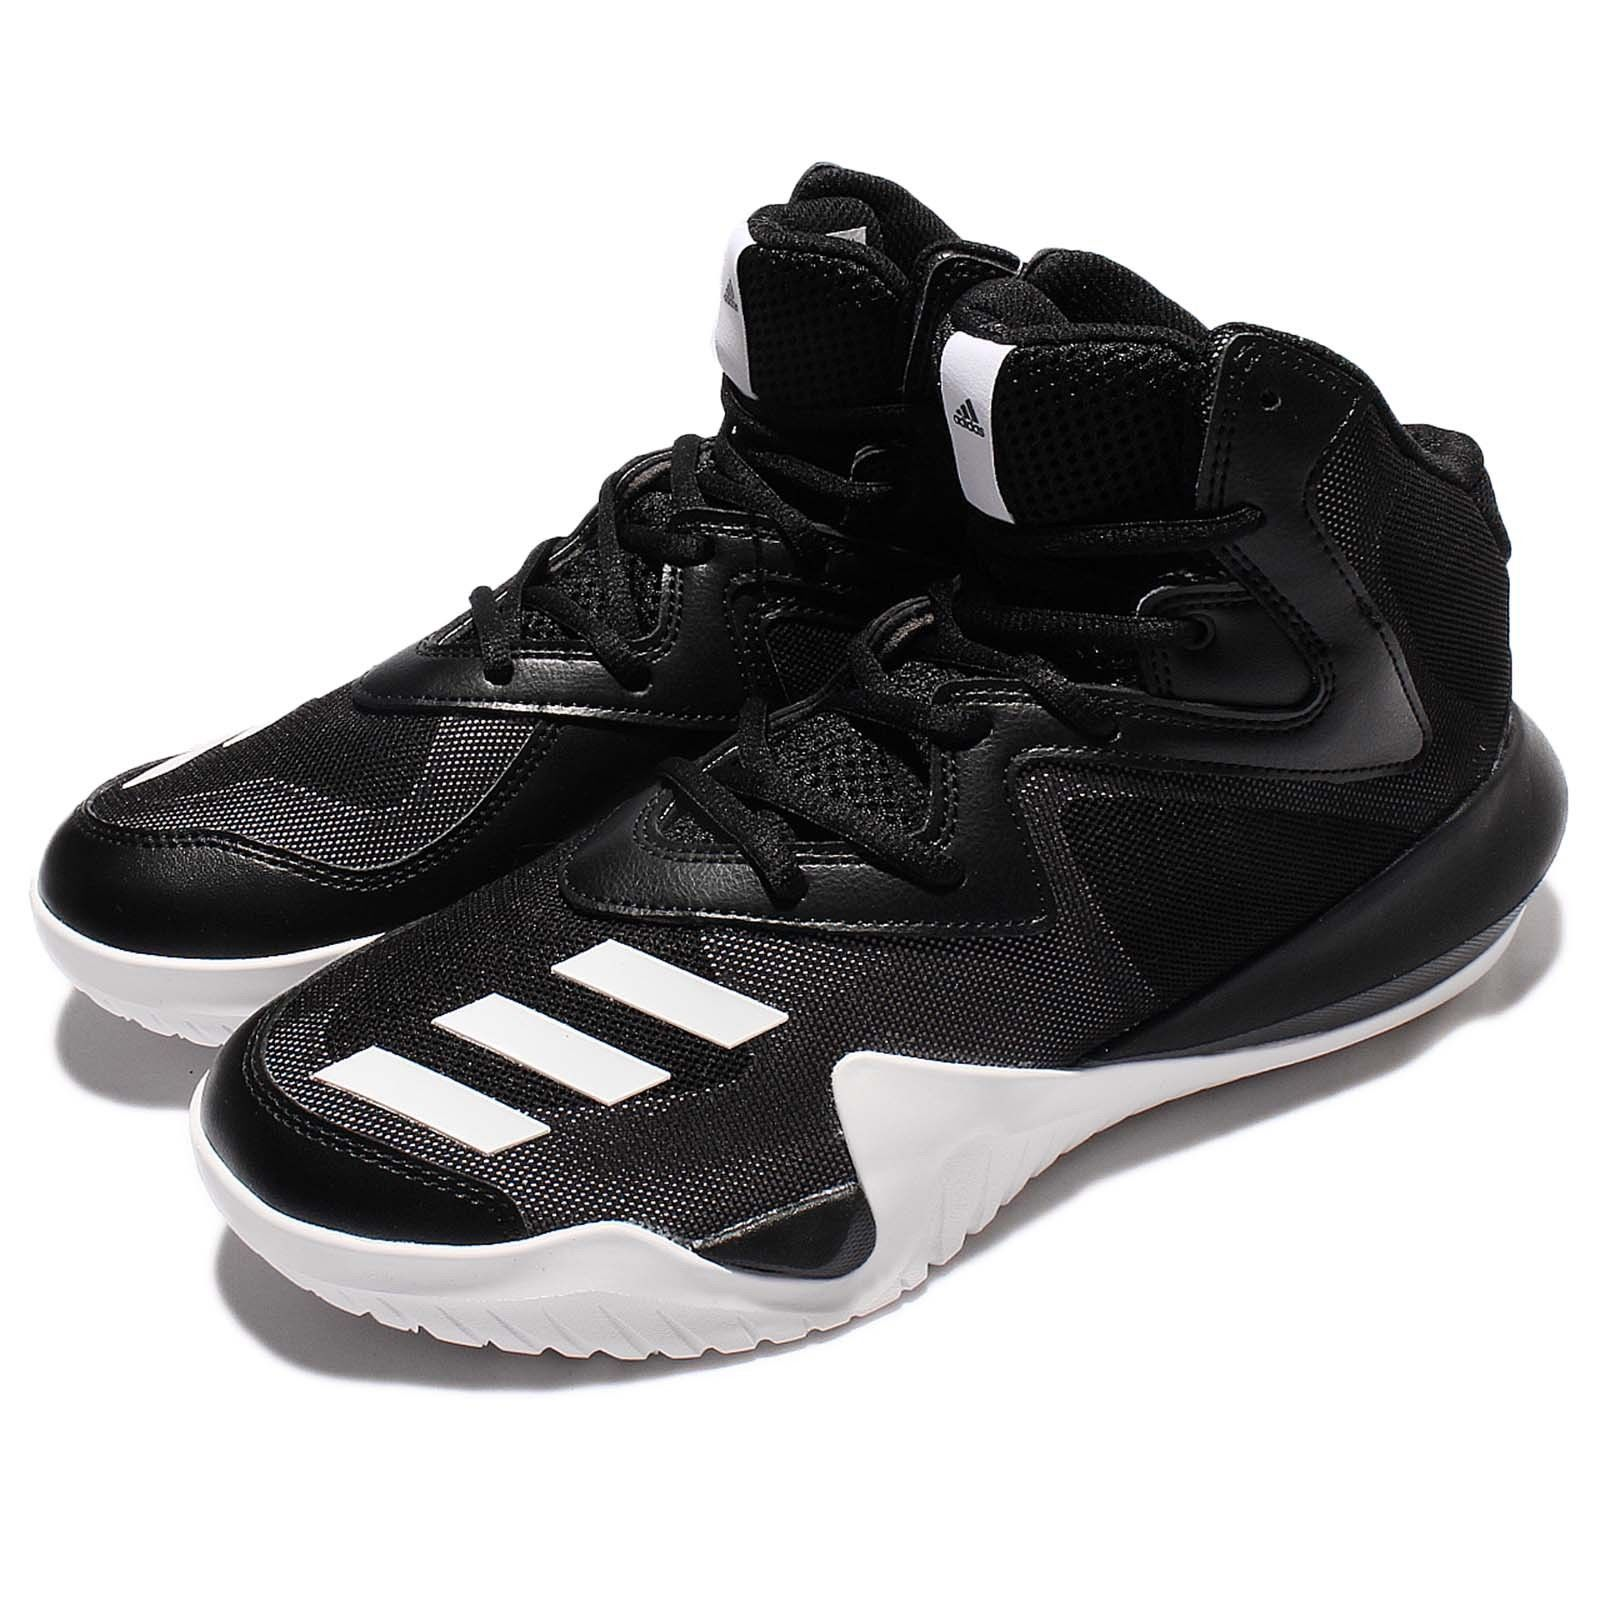 adidas Crazy Team 2017 Black White Men Basketball Shoes Sneakers Trainers BB8254